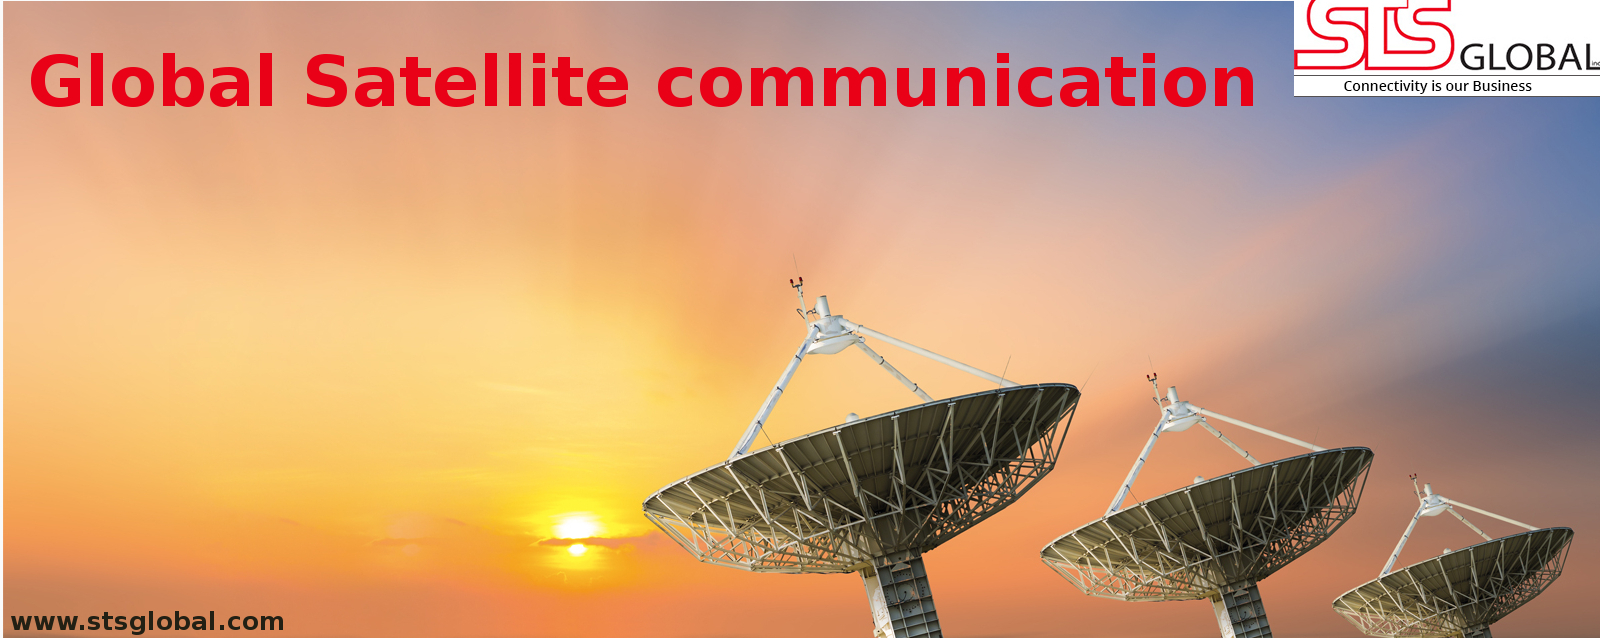 satellite communication equipment or system satellites are used for global satellite communication global communication is used to describe